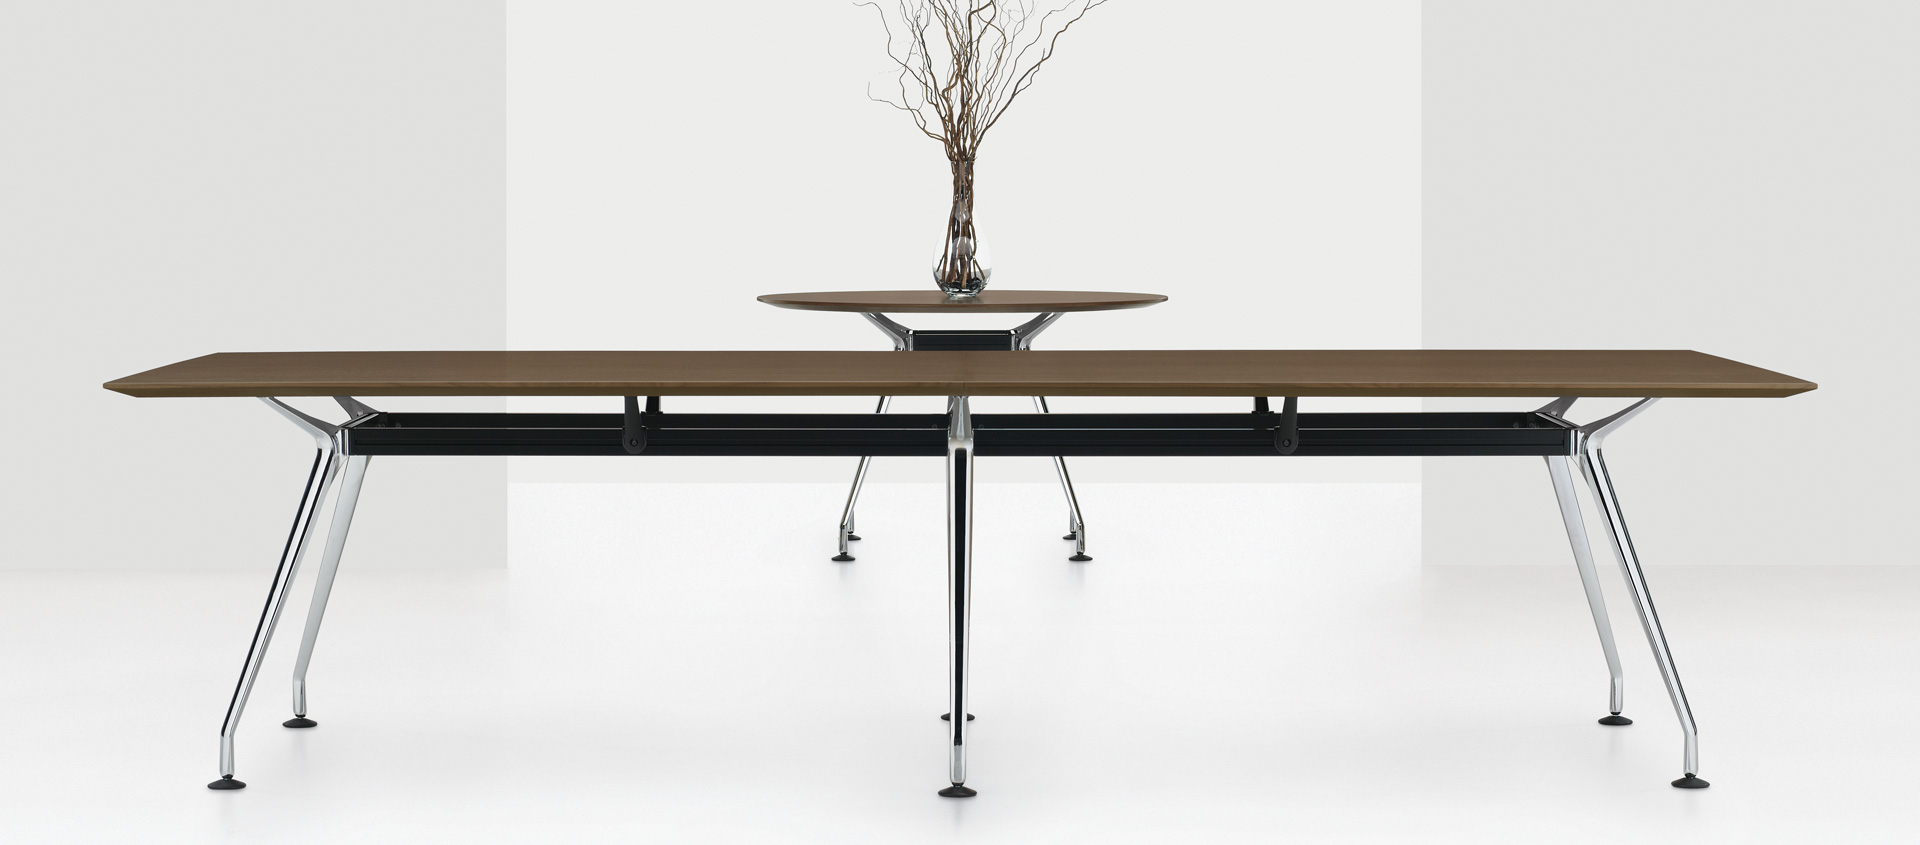 Contemporary 12' Kadin Conference Table. Available in a variety of different finish options.